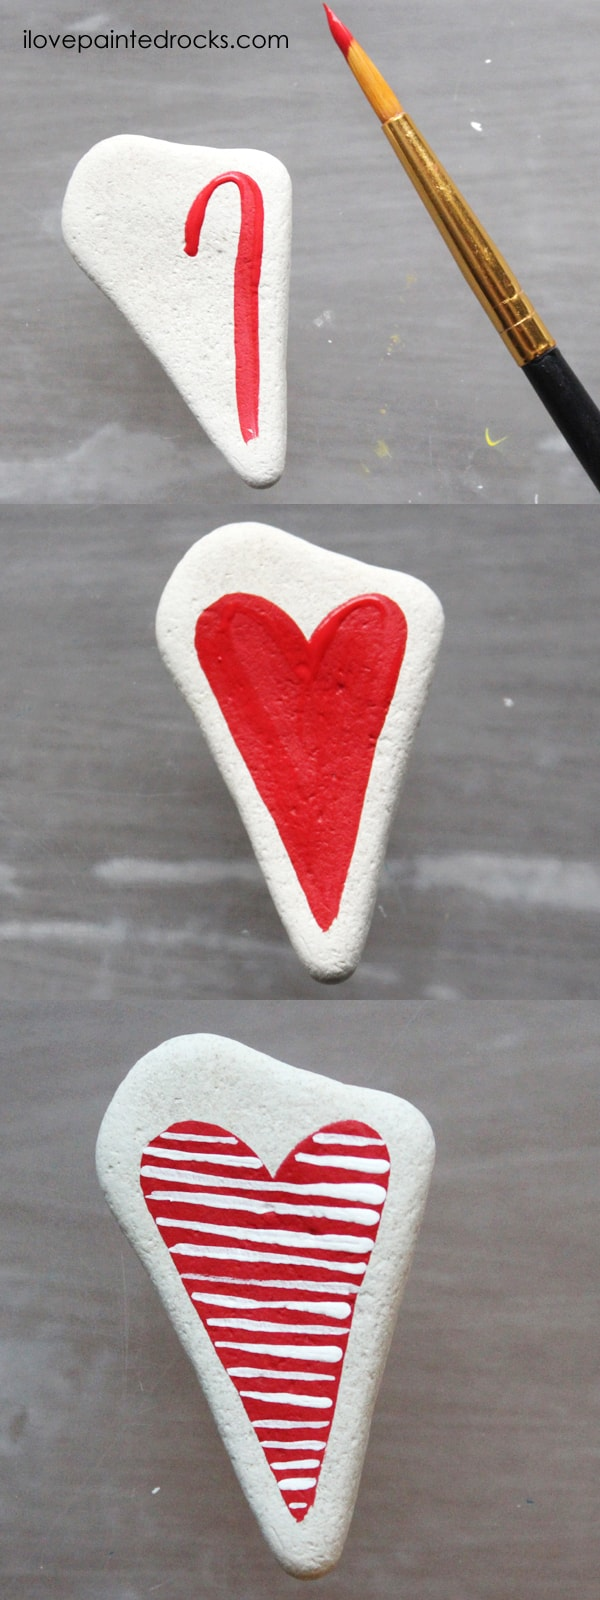 Easy rock painting ideas for Valentine's Day. I love all the painted rock tutorials in this post! Learn how to paint a striped heart rock. #ilovepaintedrocks #rockpainting #paintedrocks #valentinescraft #easycraft #kidscraft #rockpaintingideas